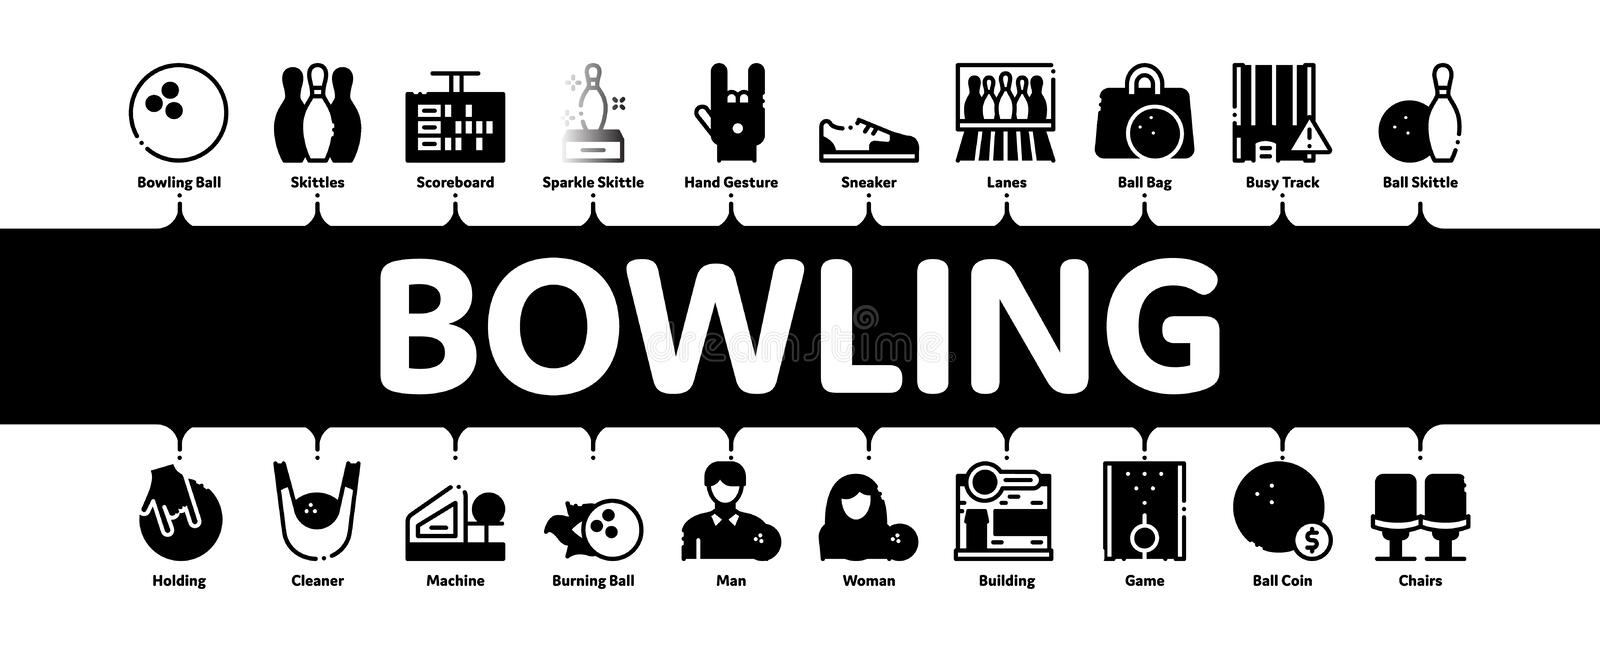 Bowling Game Tools Minimal Infographic Banner Vector stock illustration